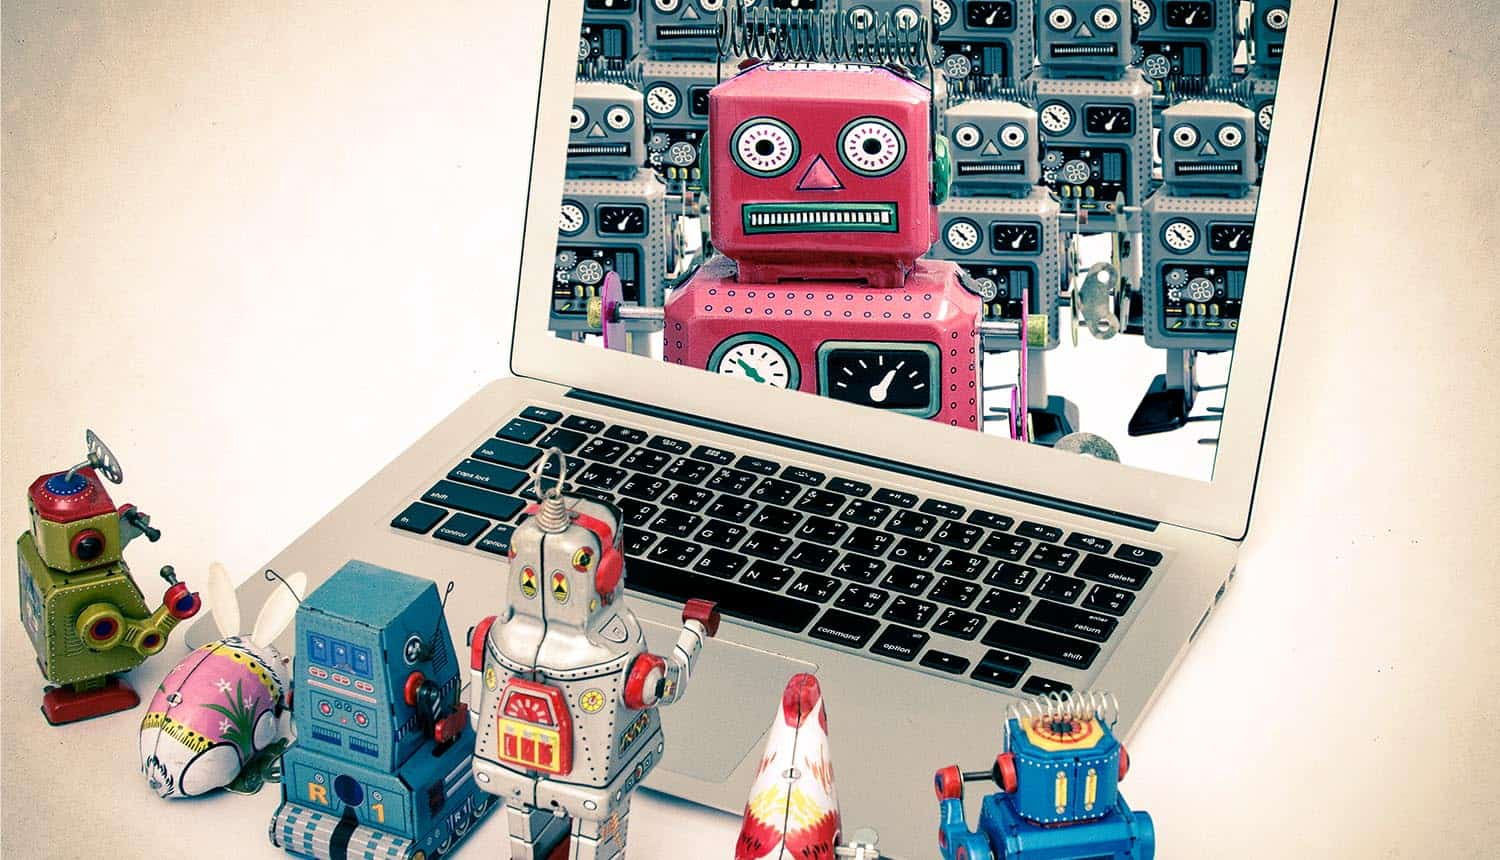 Robot toys getting instructions from boss robot showing the threat of IoT botnet and DDoS